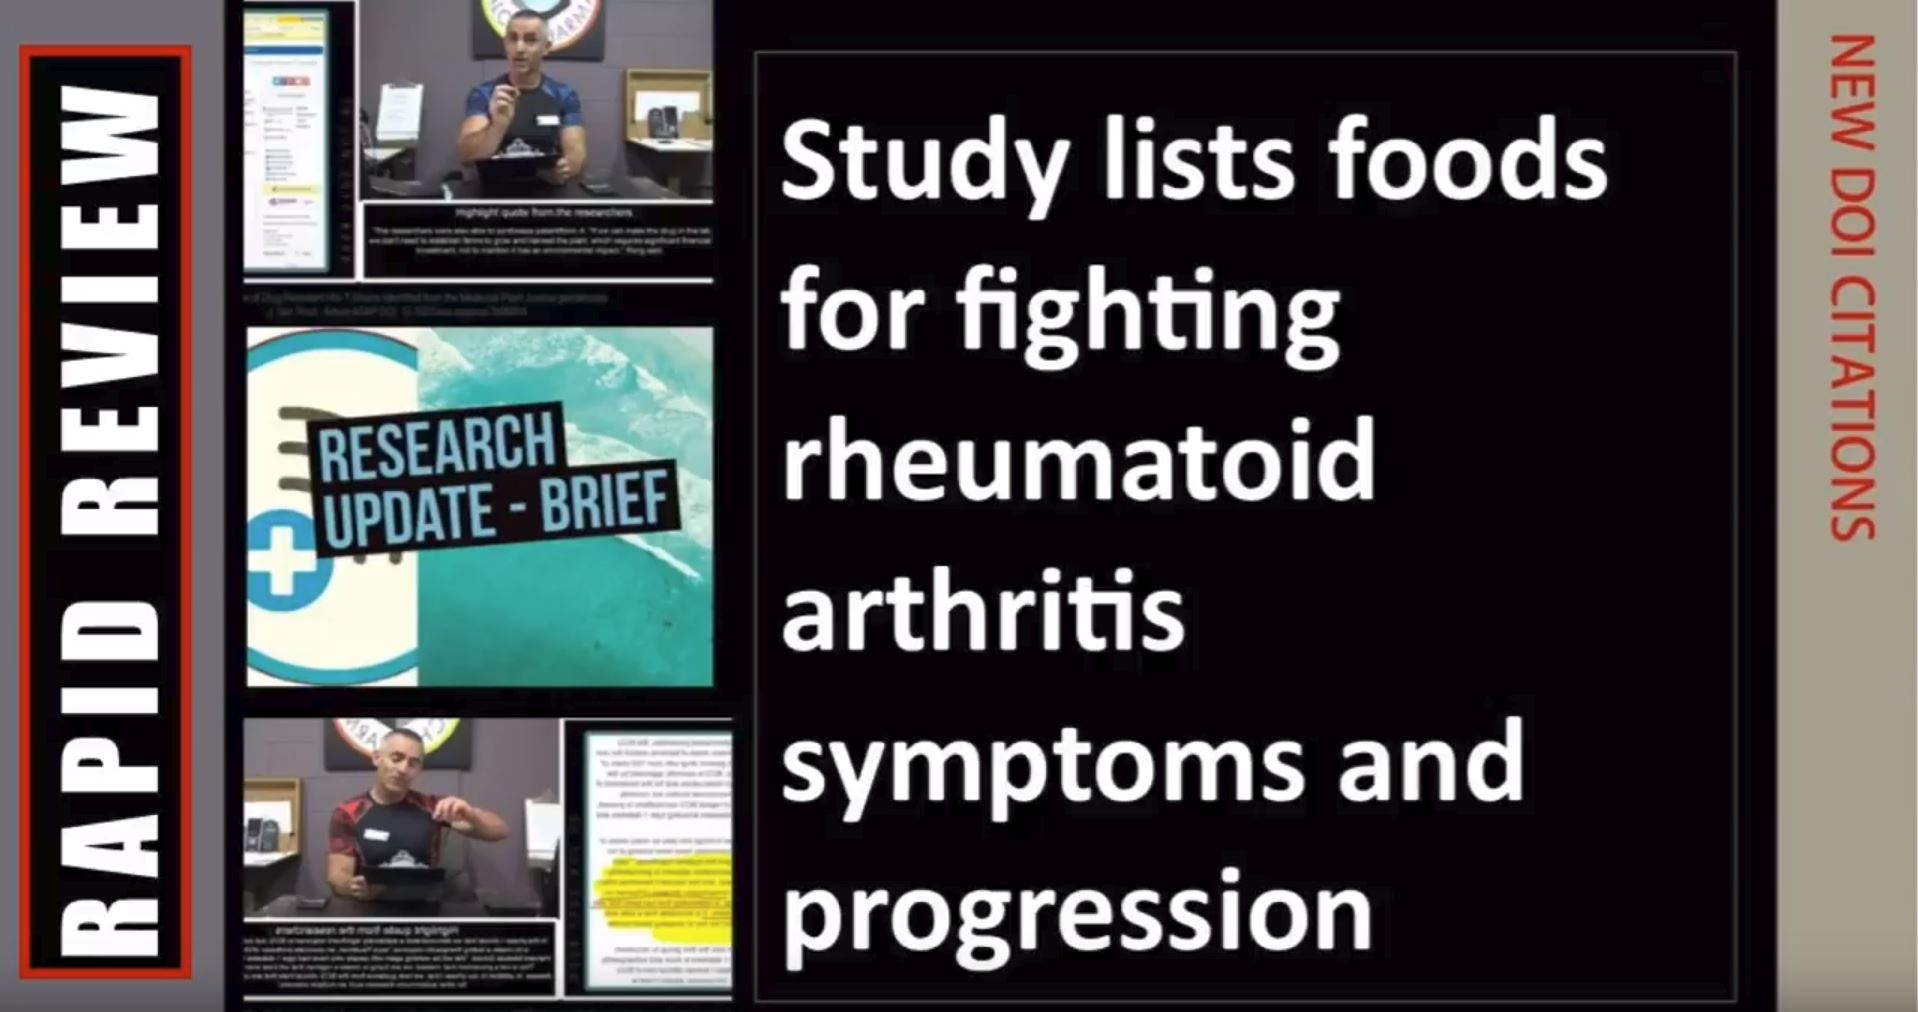 Fighting rheumatoid arthritis symptoms and progression with a list of food items proven beneficial